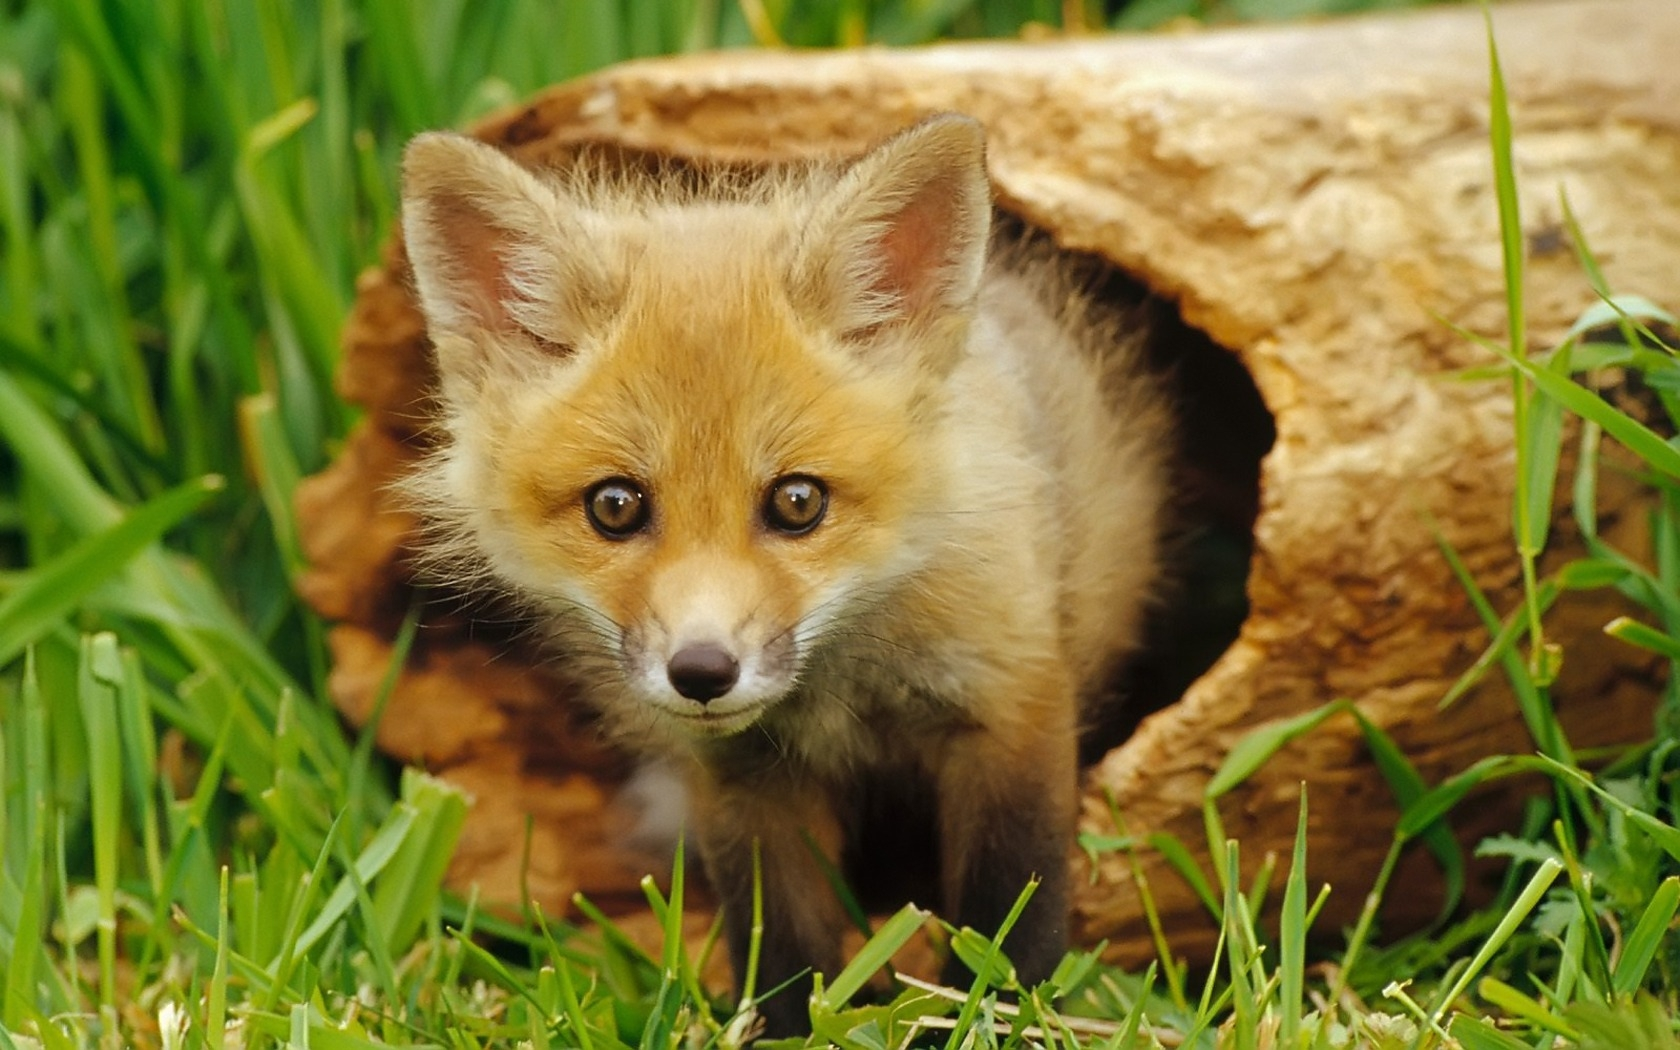 35970 download wallpaper Animals, Fox screensavers and pictures for free